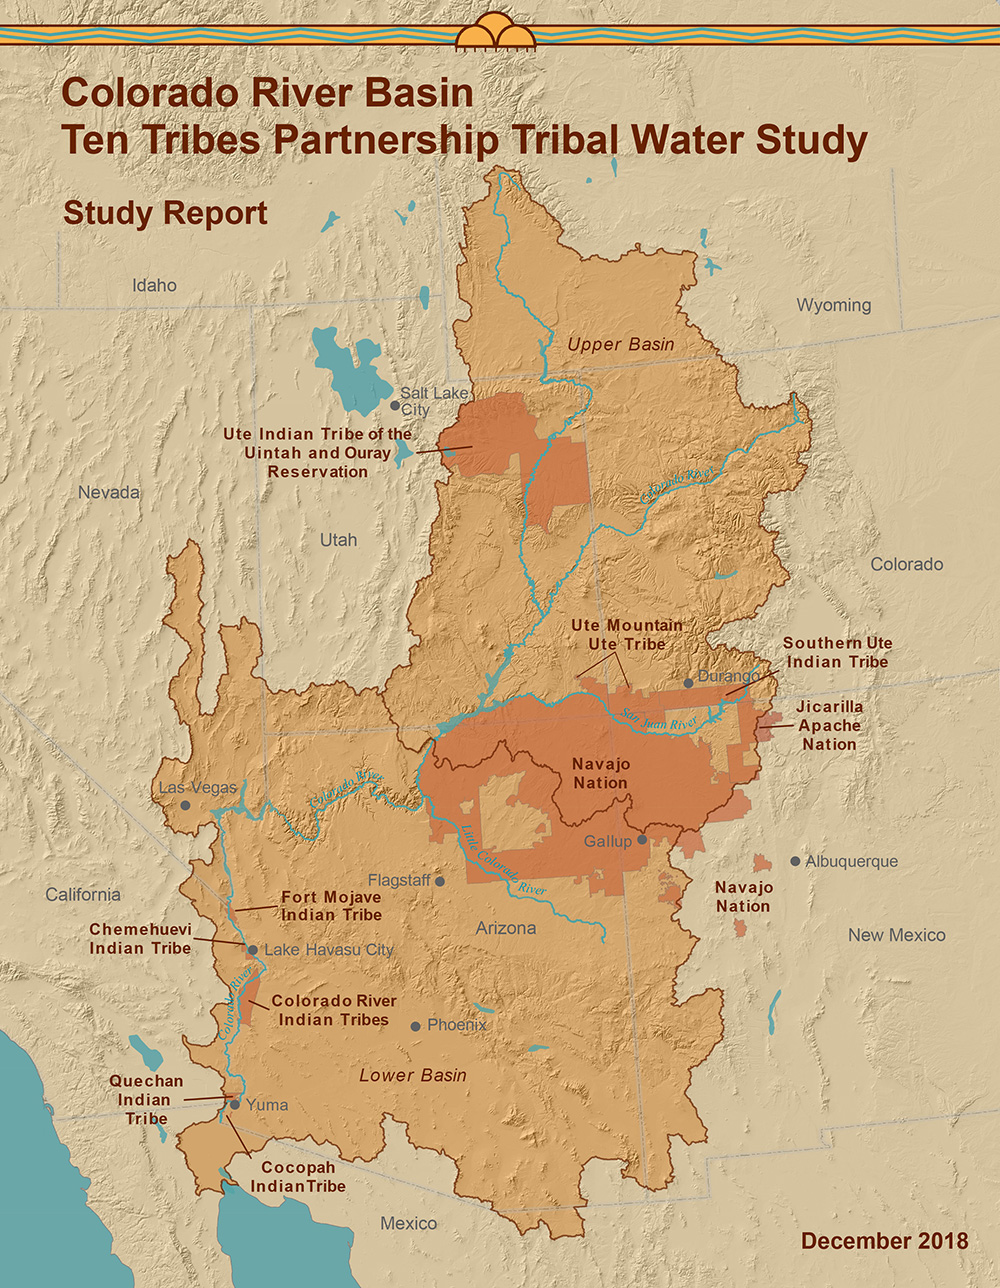 Colorado River Basin Ten Tribes Partnership Tribal Water Study Study Report